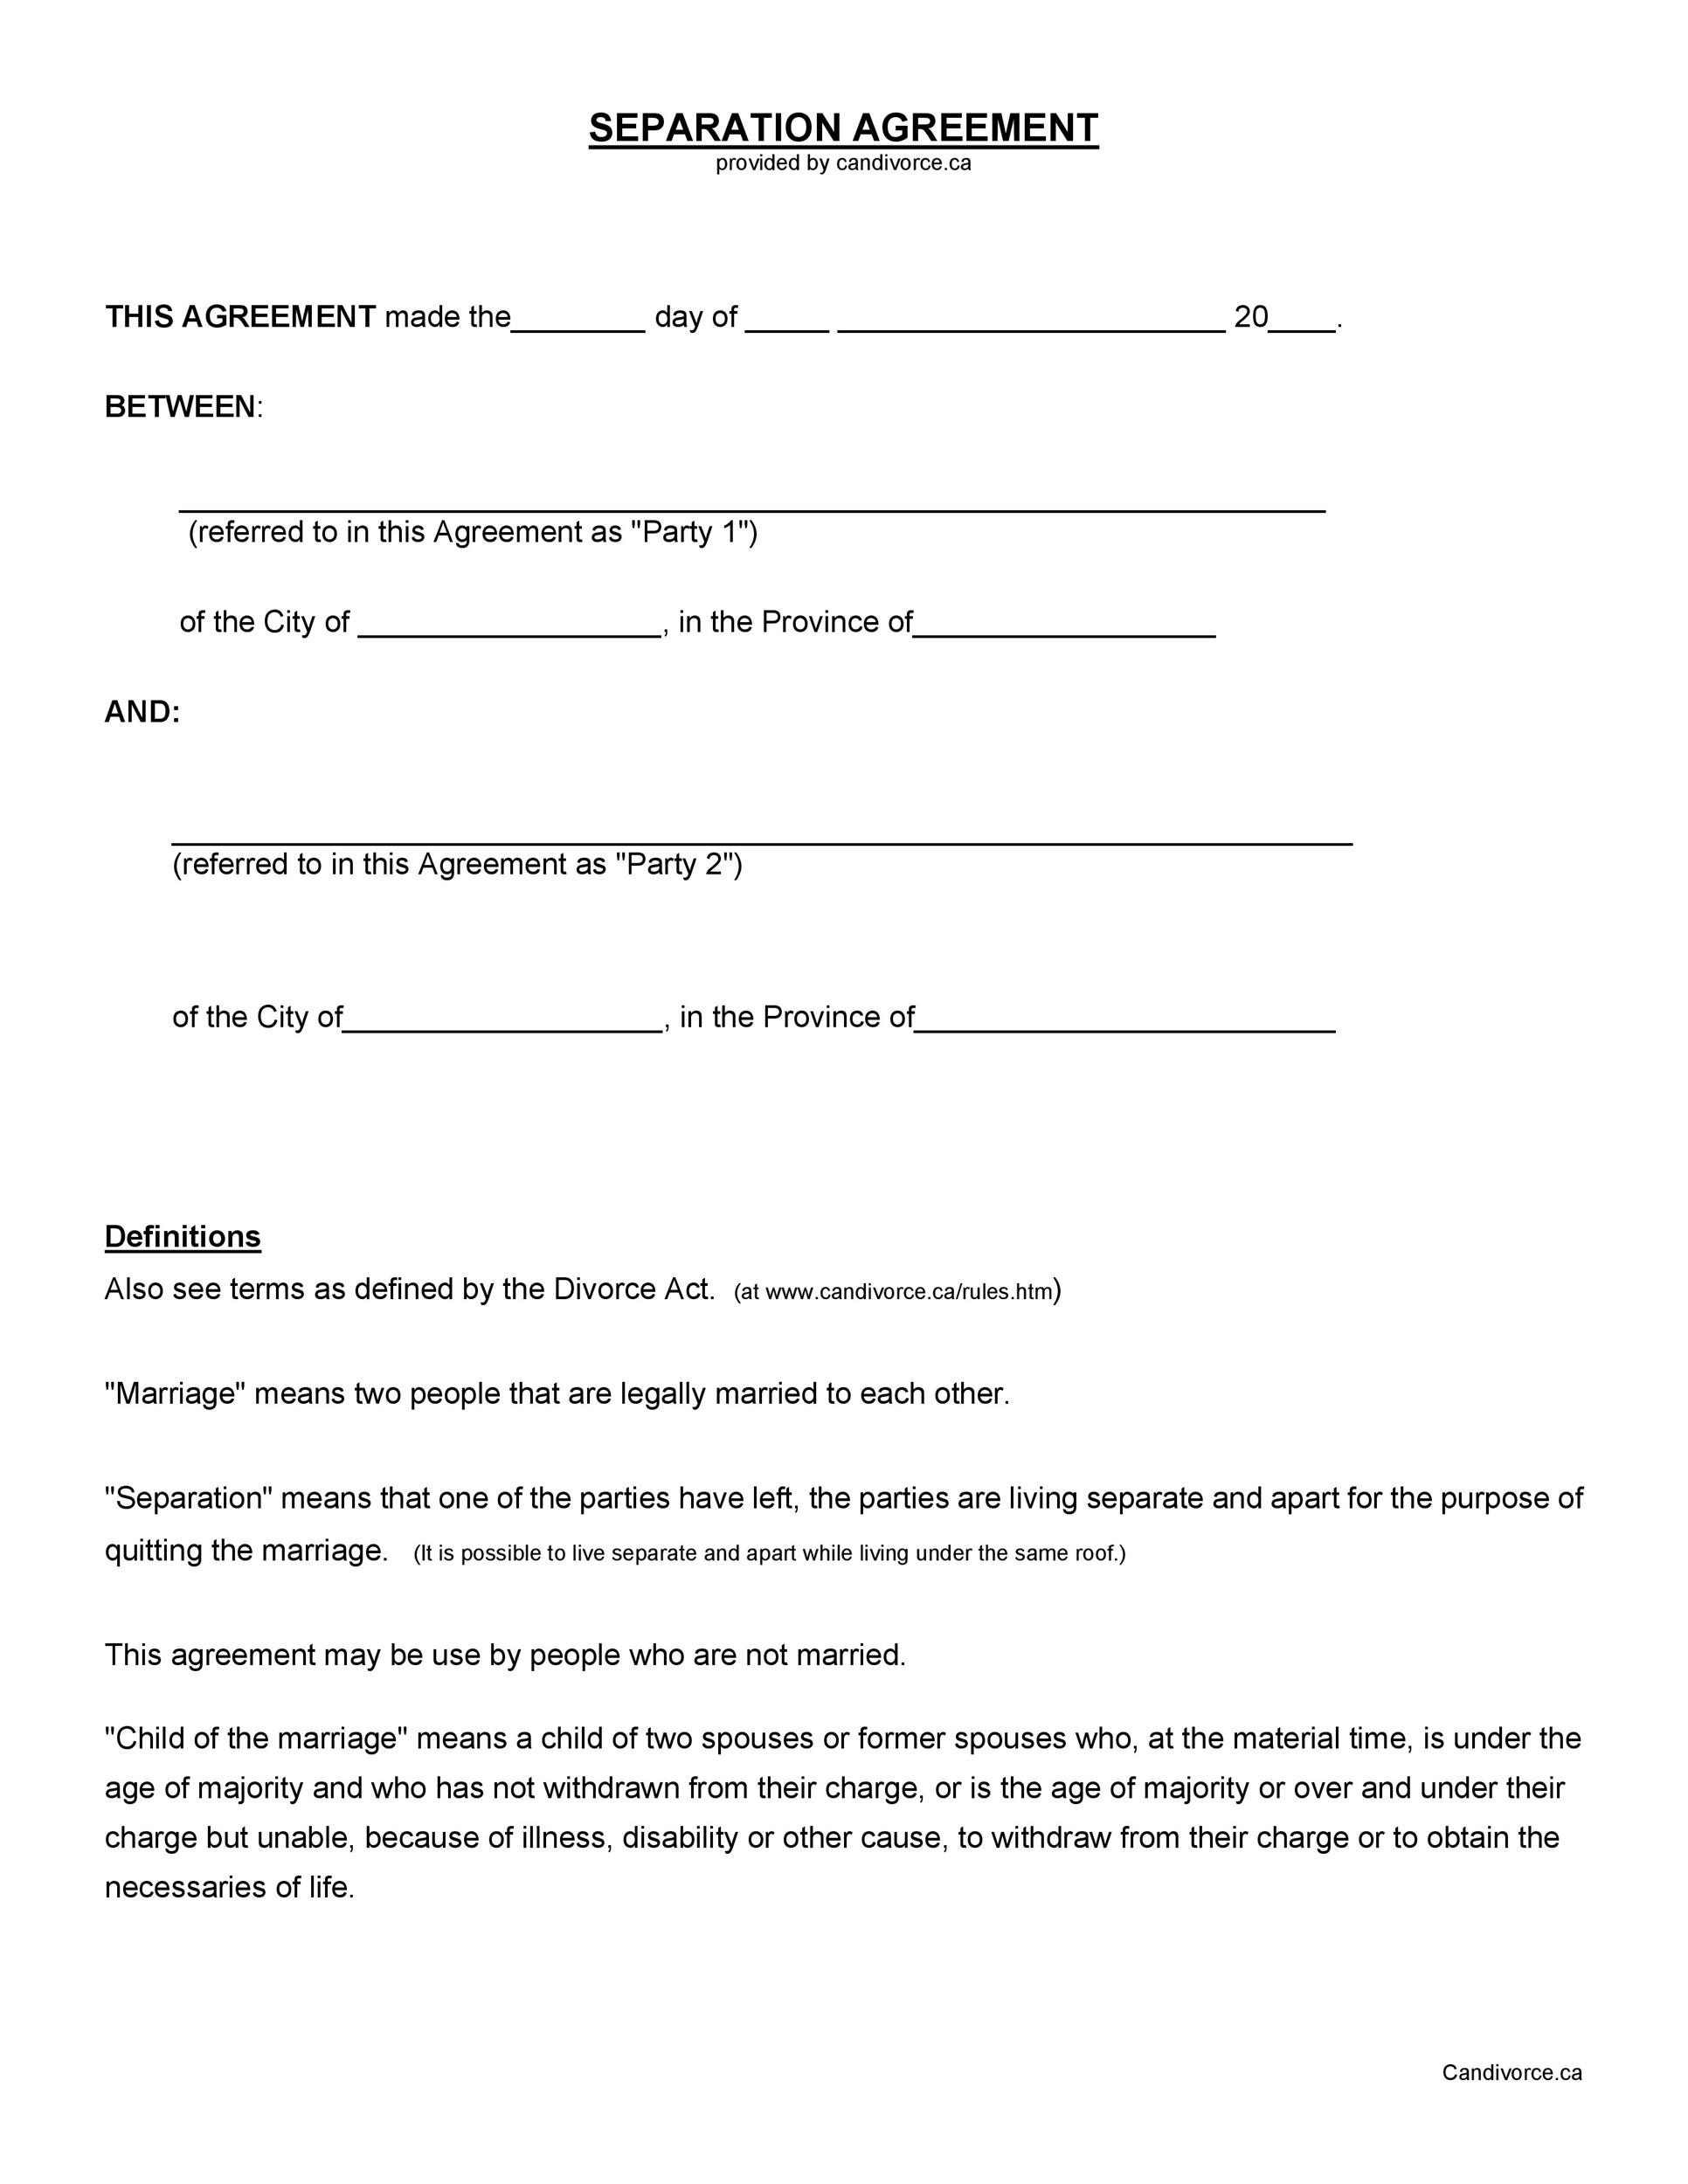 Legal Separation Agreement Template from templatelab.com